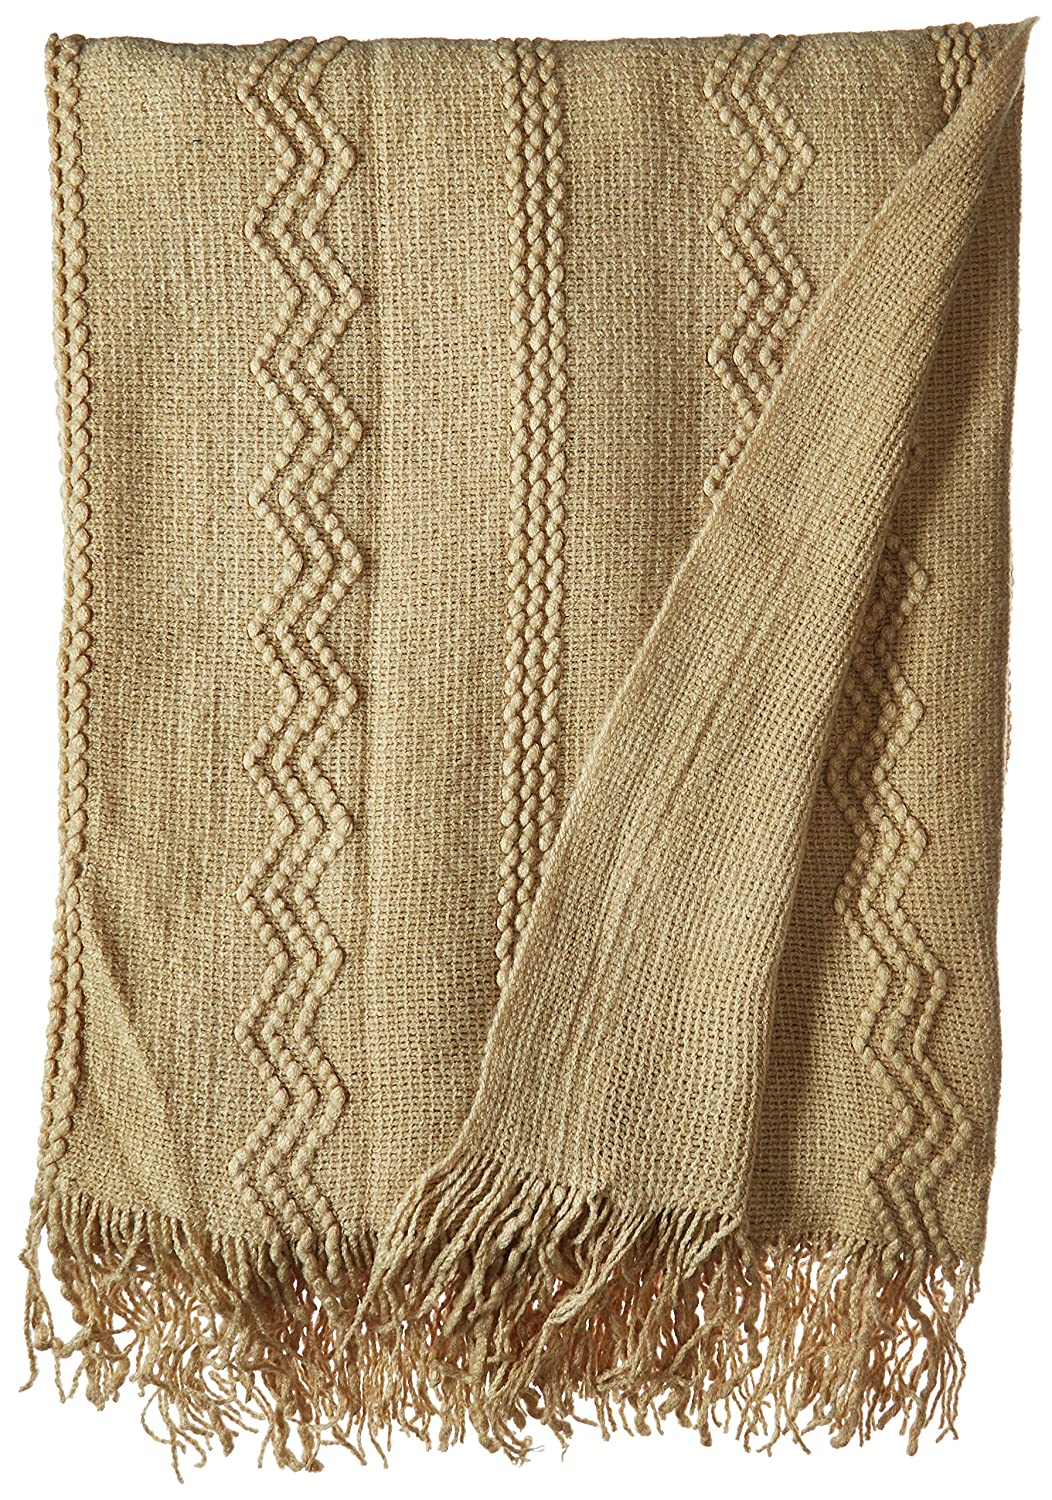 Battilo Inc Intricate Woven Throw Blanket with Raised Patterns and Tasseled End 50x60 Ivory BTL15018-C